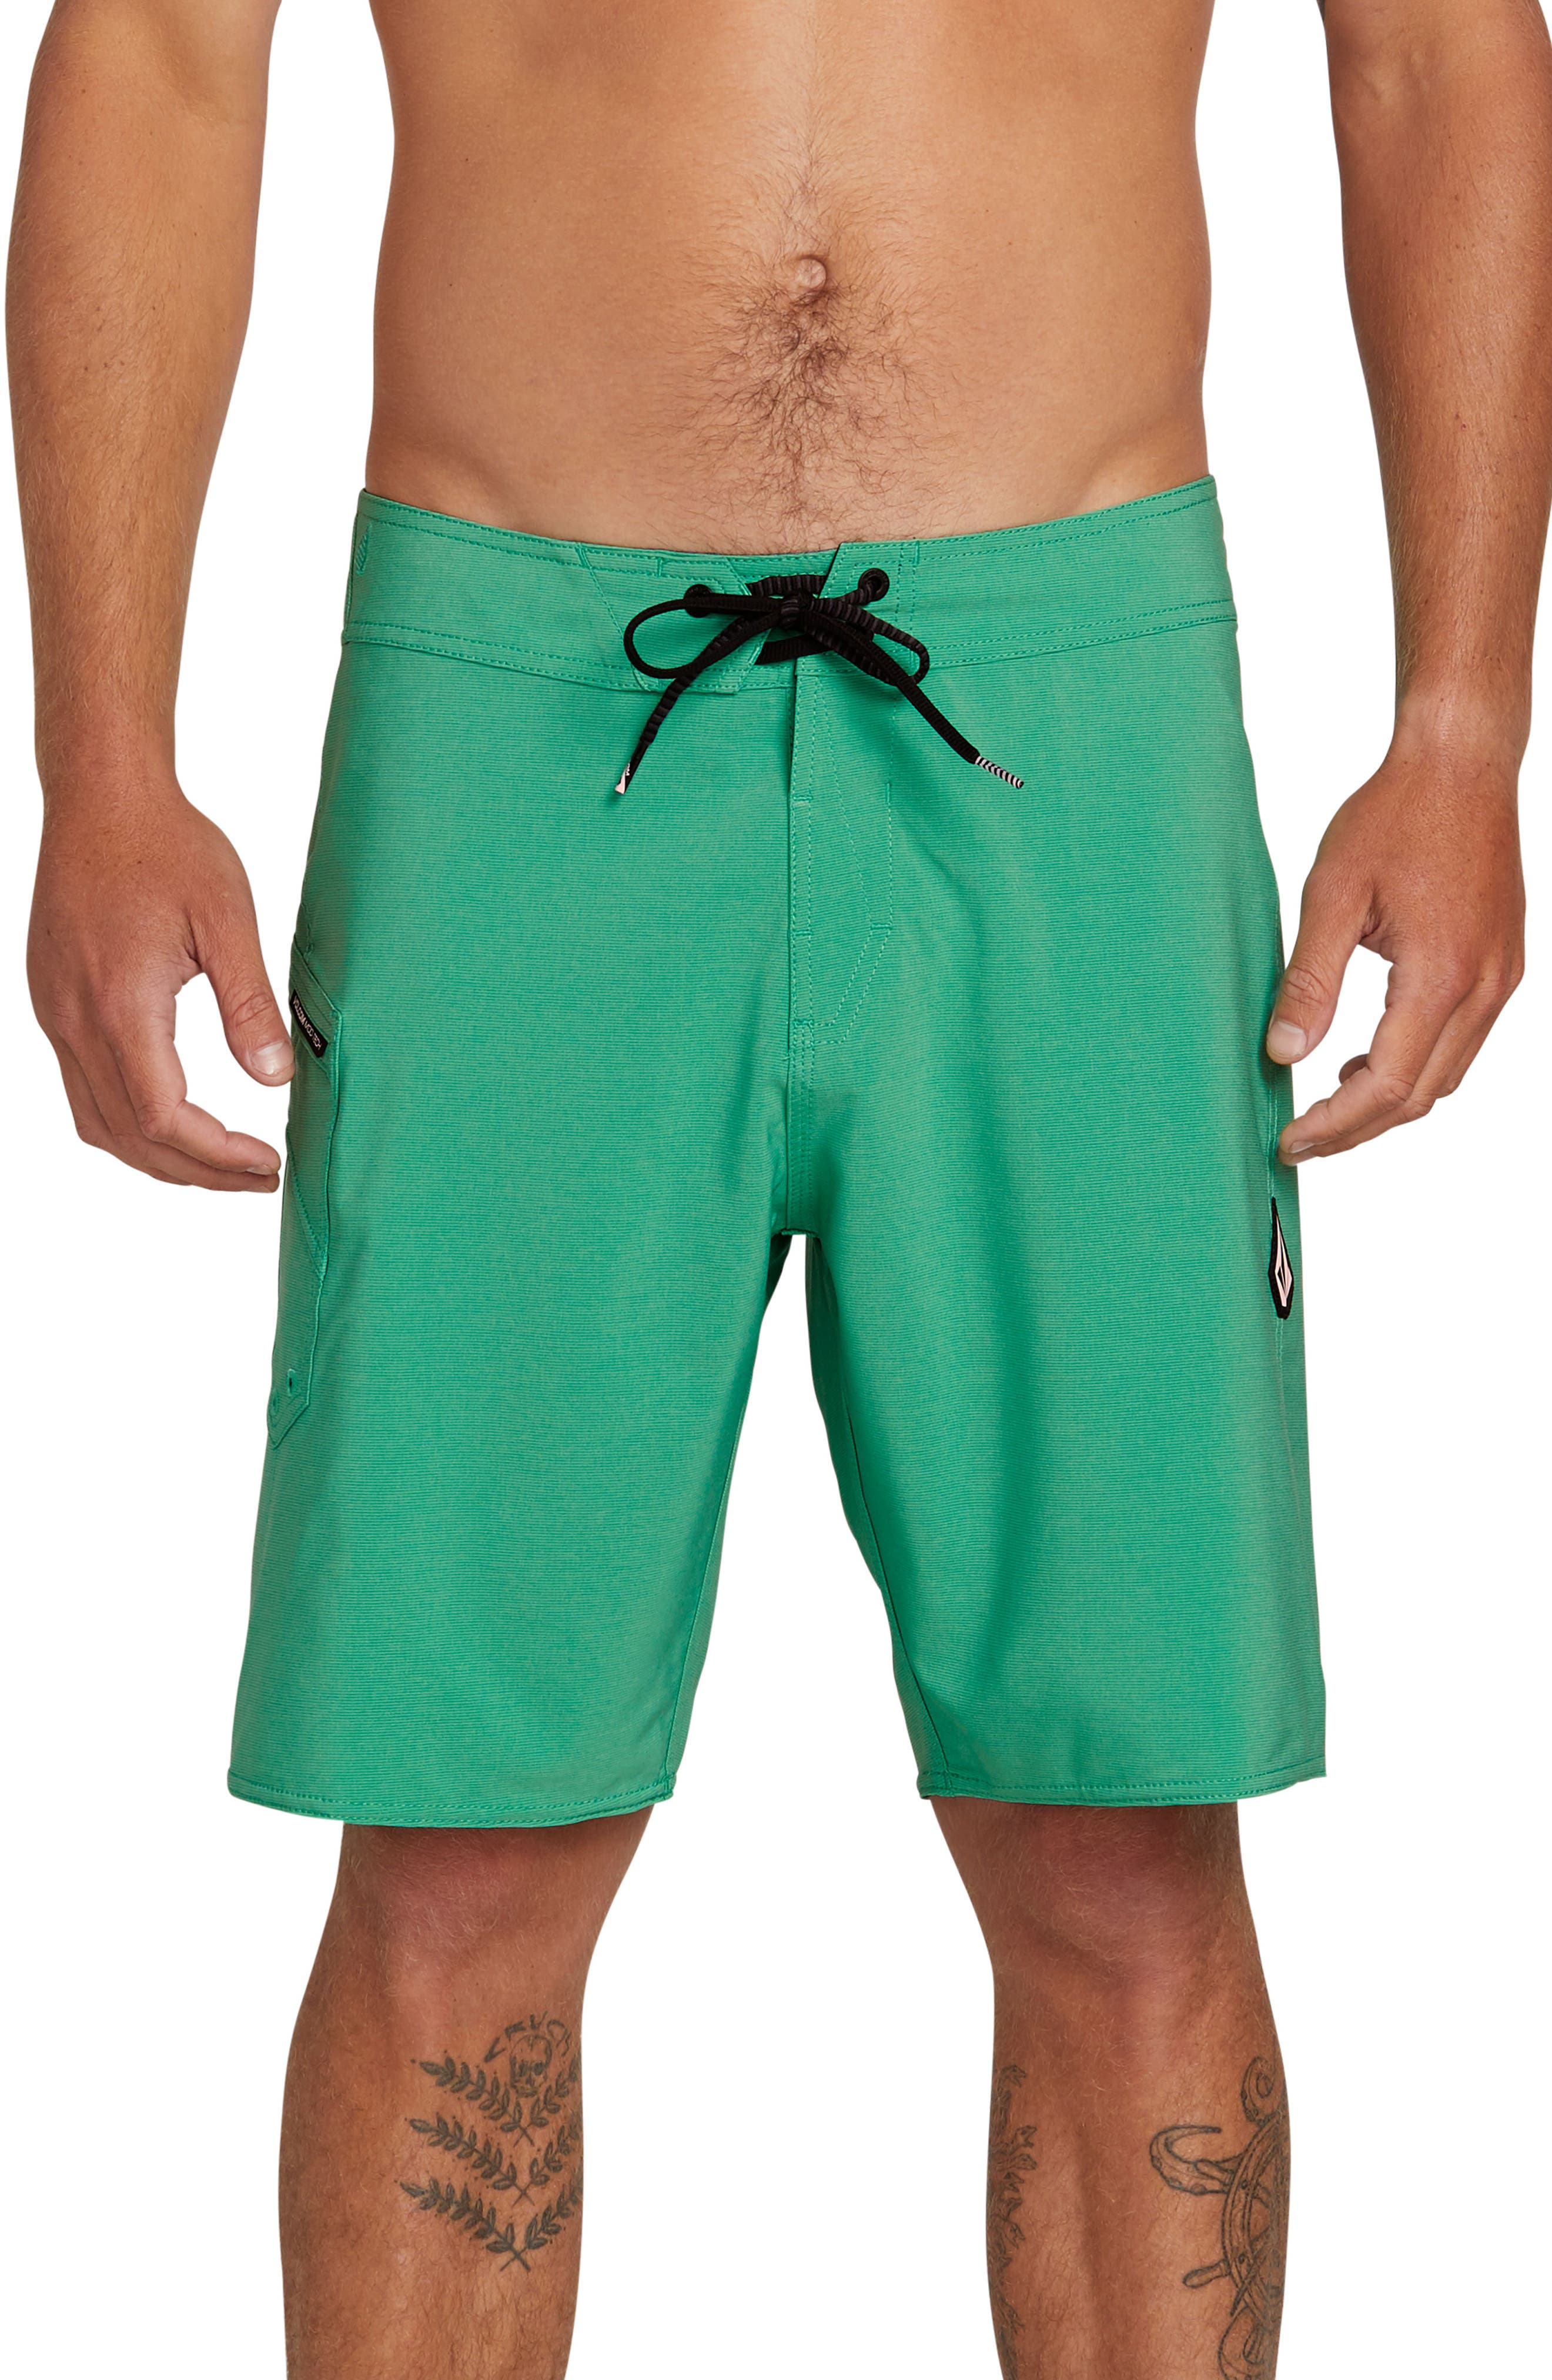 Volcom Lido Solid Mod Board Shorts, Green